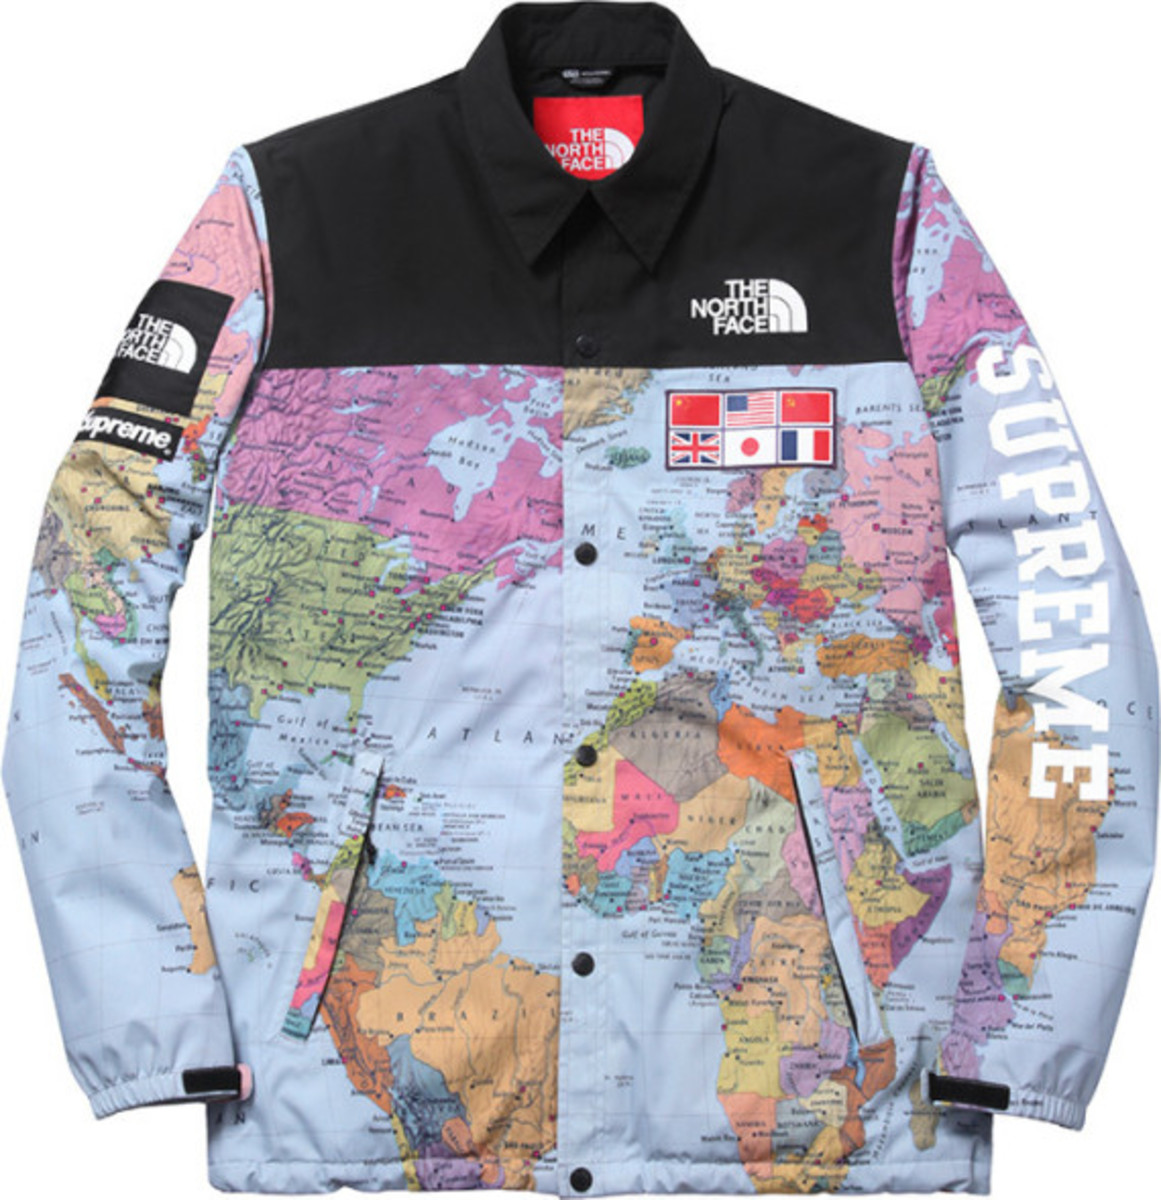 supreme-x-the-north-face-spring-summer-2014-collection-available-09